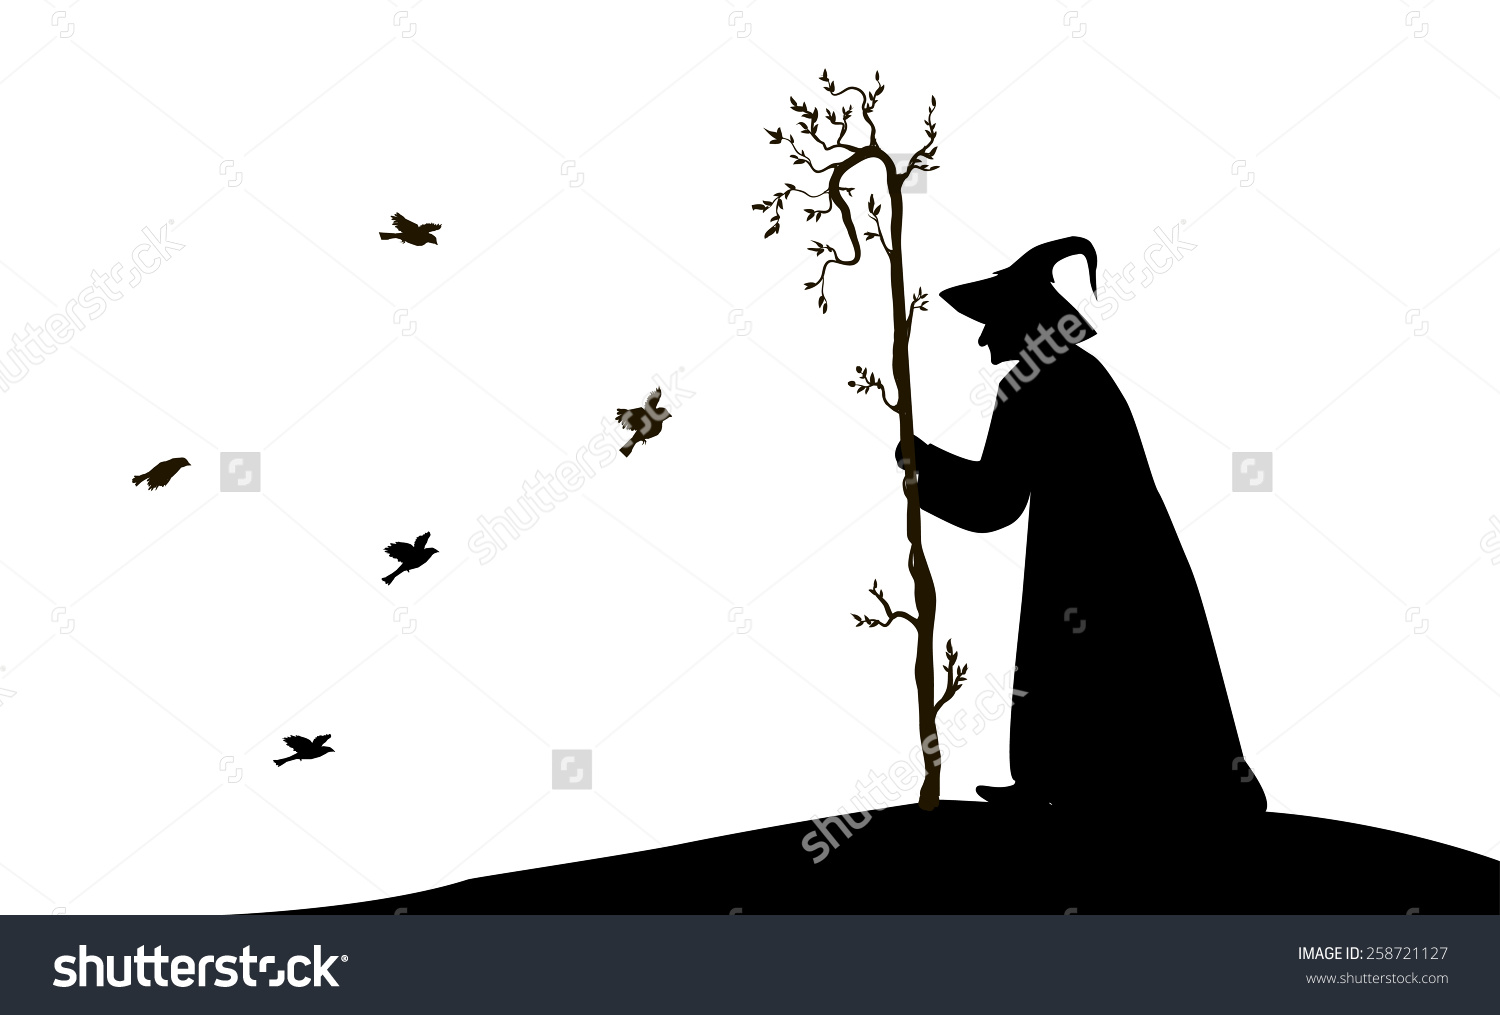 Silhouette Old Enchantress Tree Stick Flying Stock Vector.